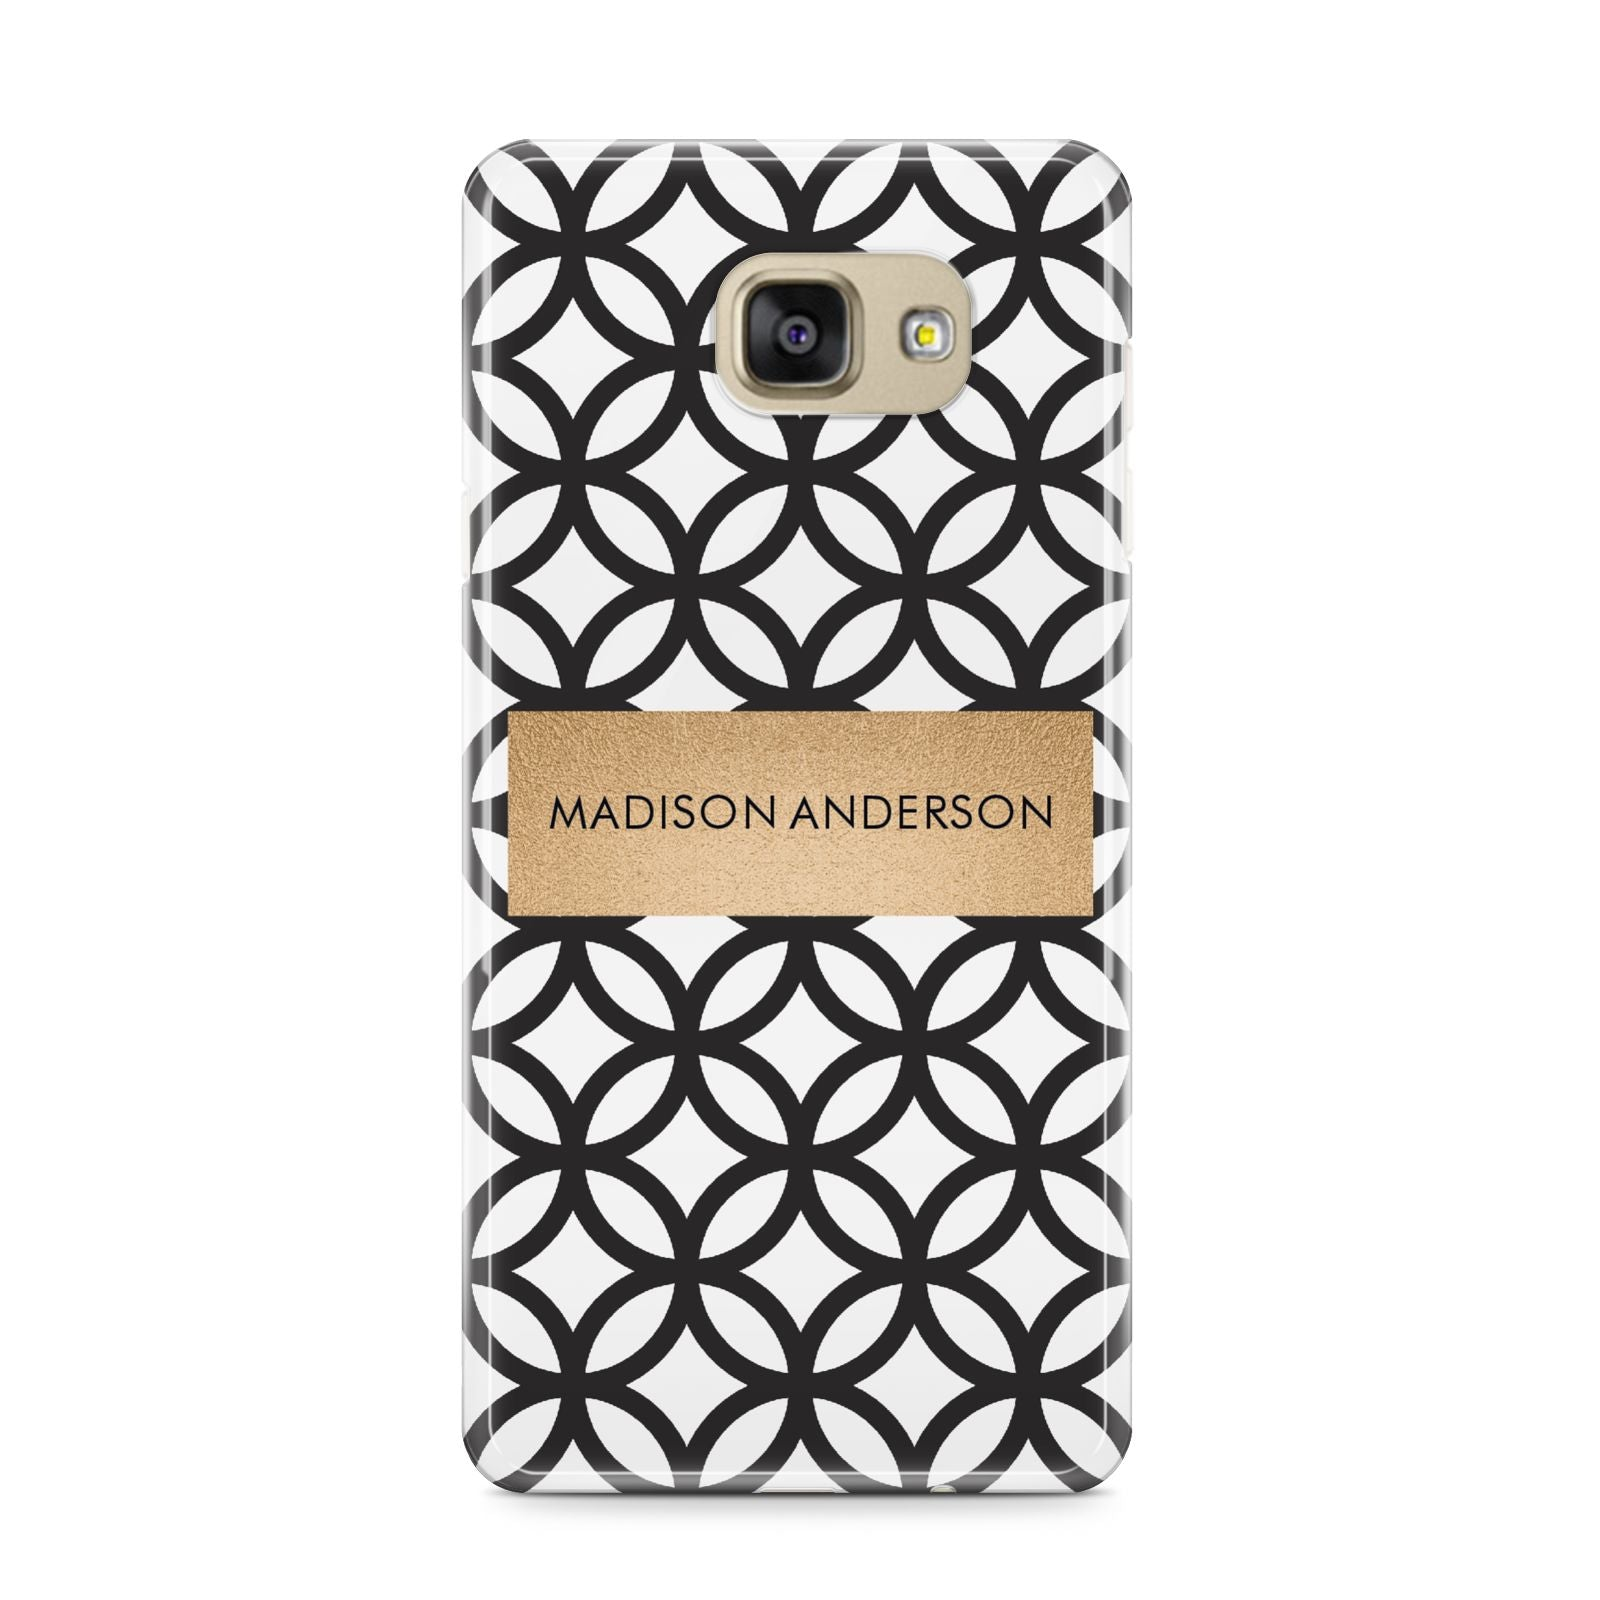 Personalised Geometric Name Or Initials Custom Samsung Galaxy A9 2016 Case on gold phone